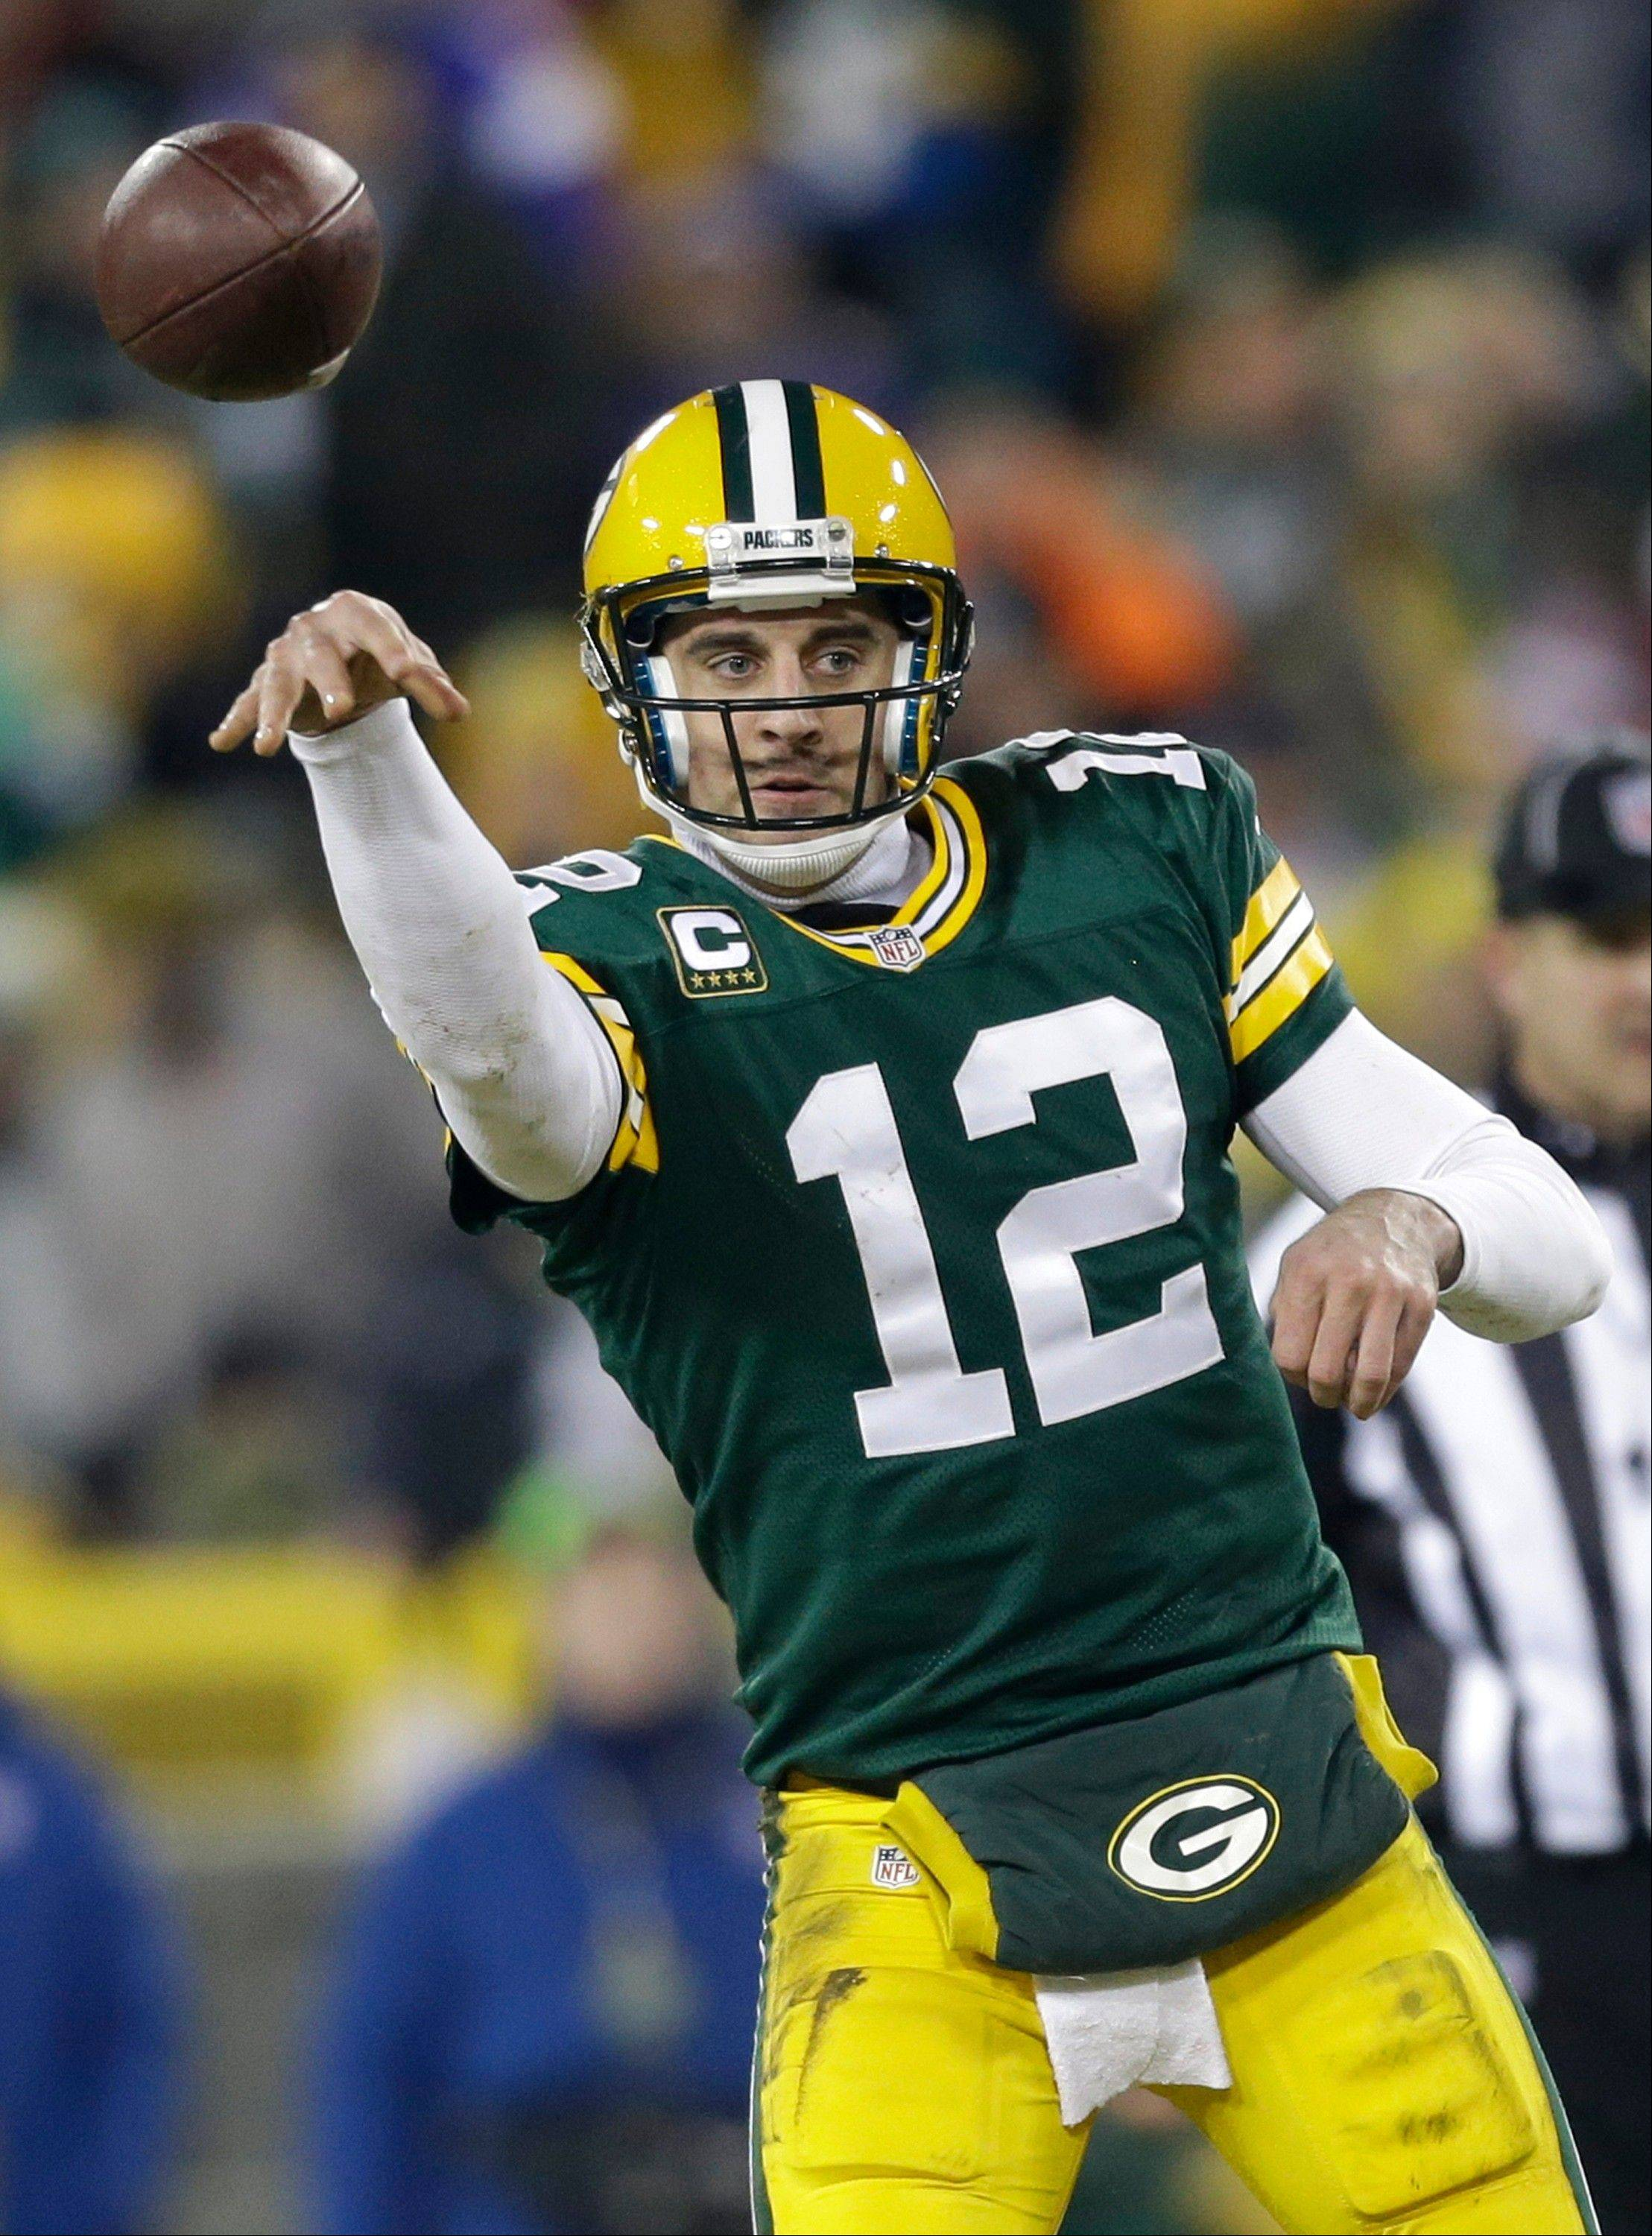 Green Bay Packers quarterback Aaron Rodgers throws a pass during the second half of an NFL wild card playoff football game against the Minnesota Vikings Saturday, Jan. 5, 2013, in Green Bay, Wis.